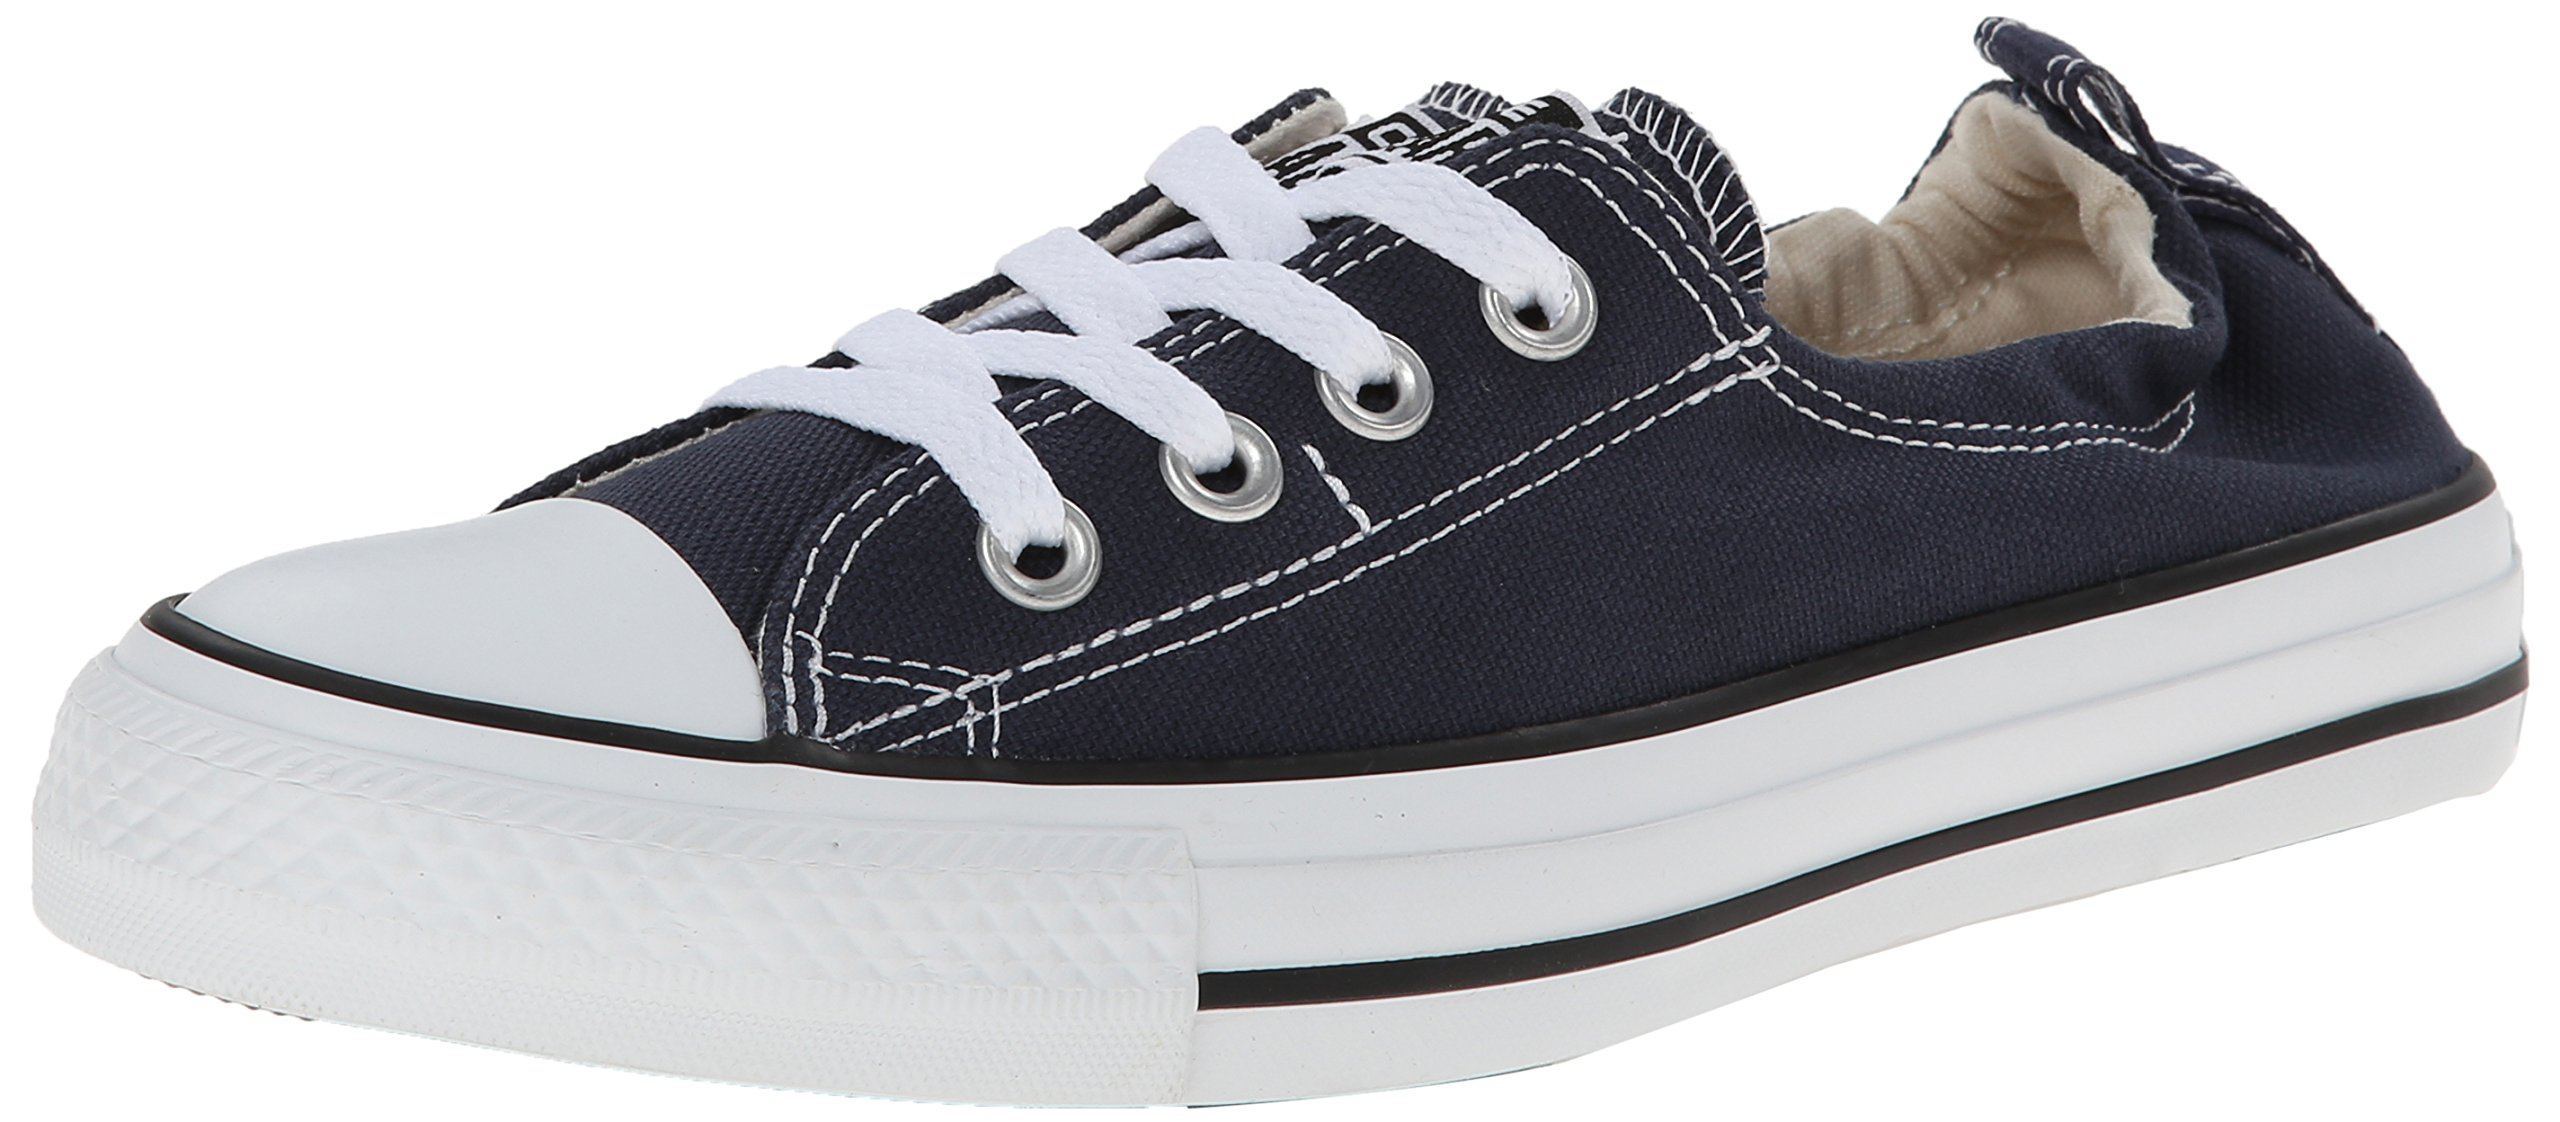 Converse Chuck Taylor All Star Shoreline Athletic/Navy Lace-Up Sneaker - 8 B(M) US